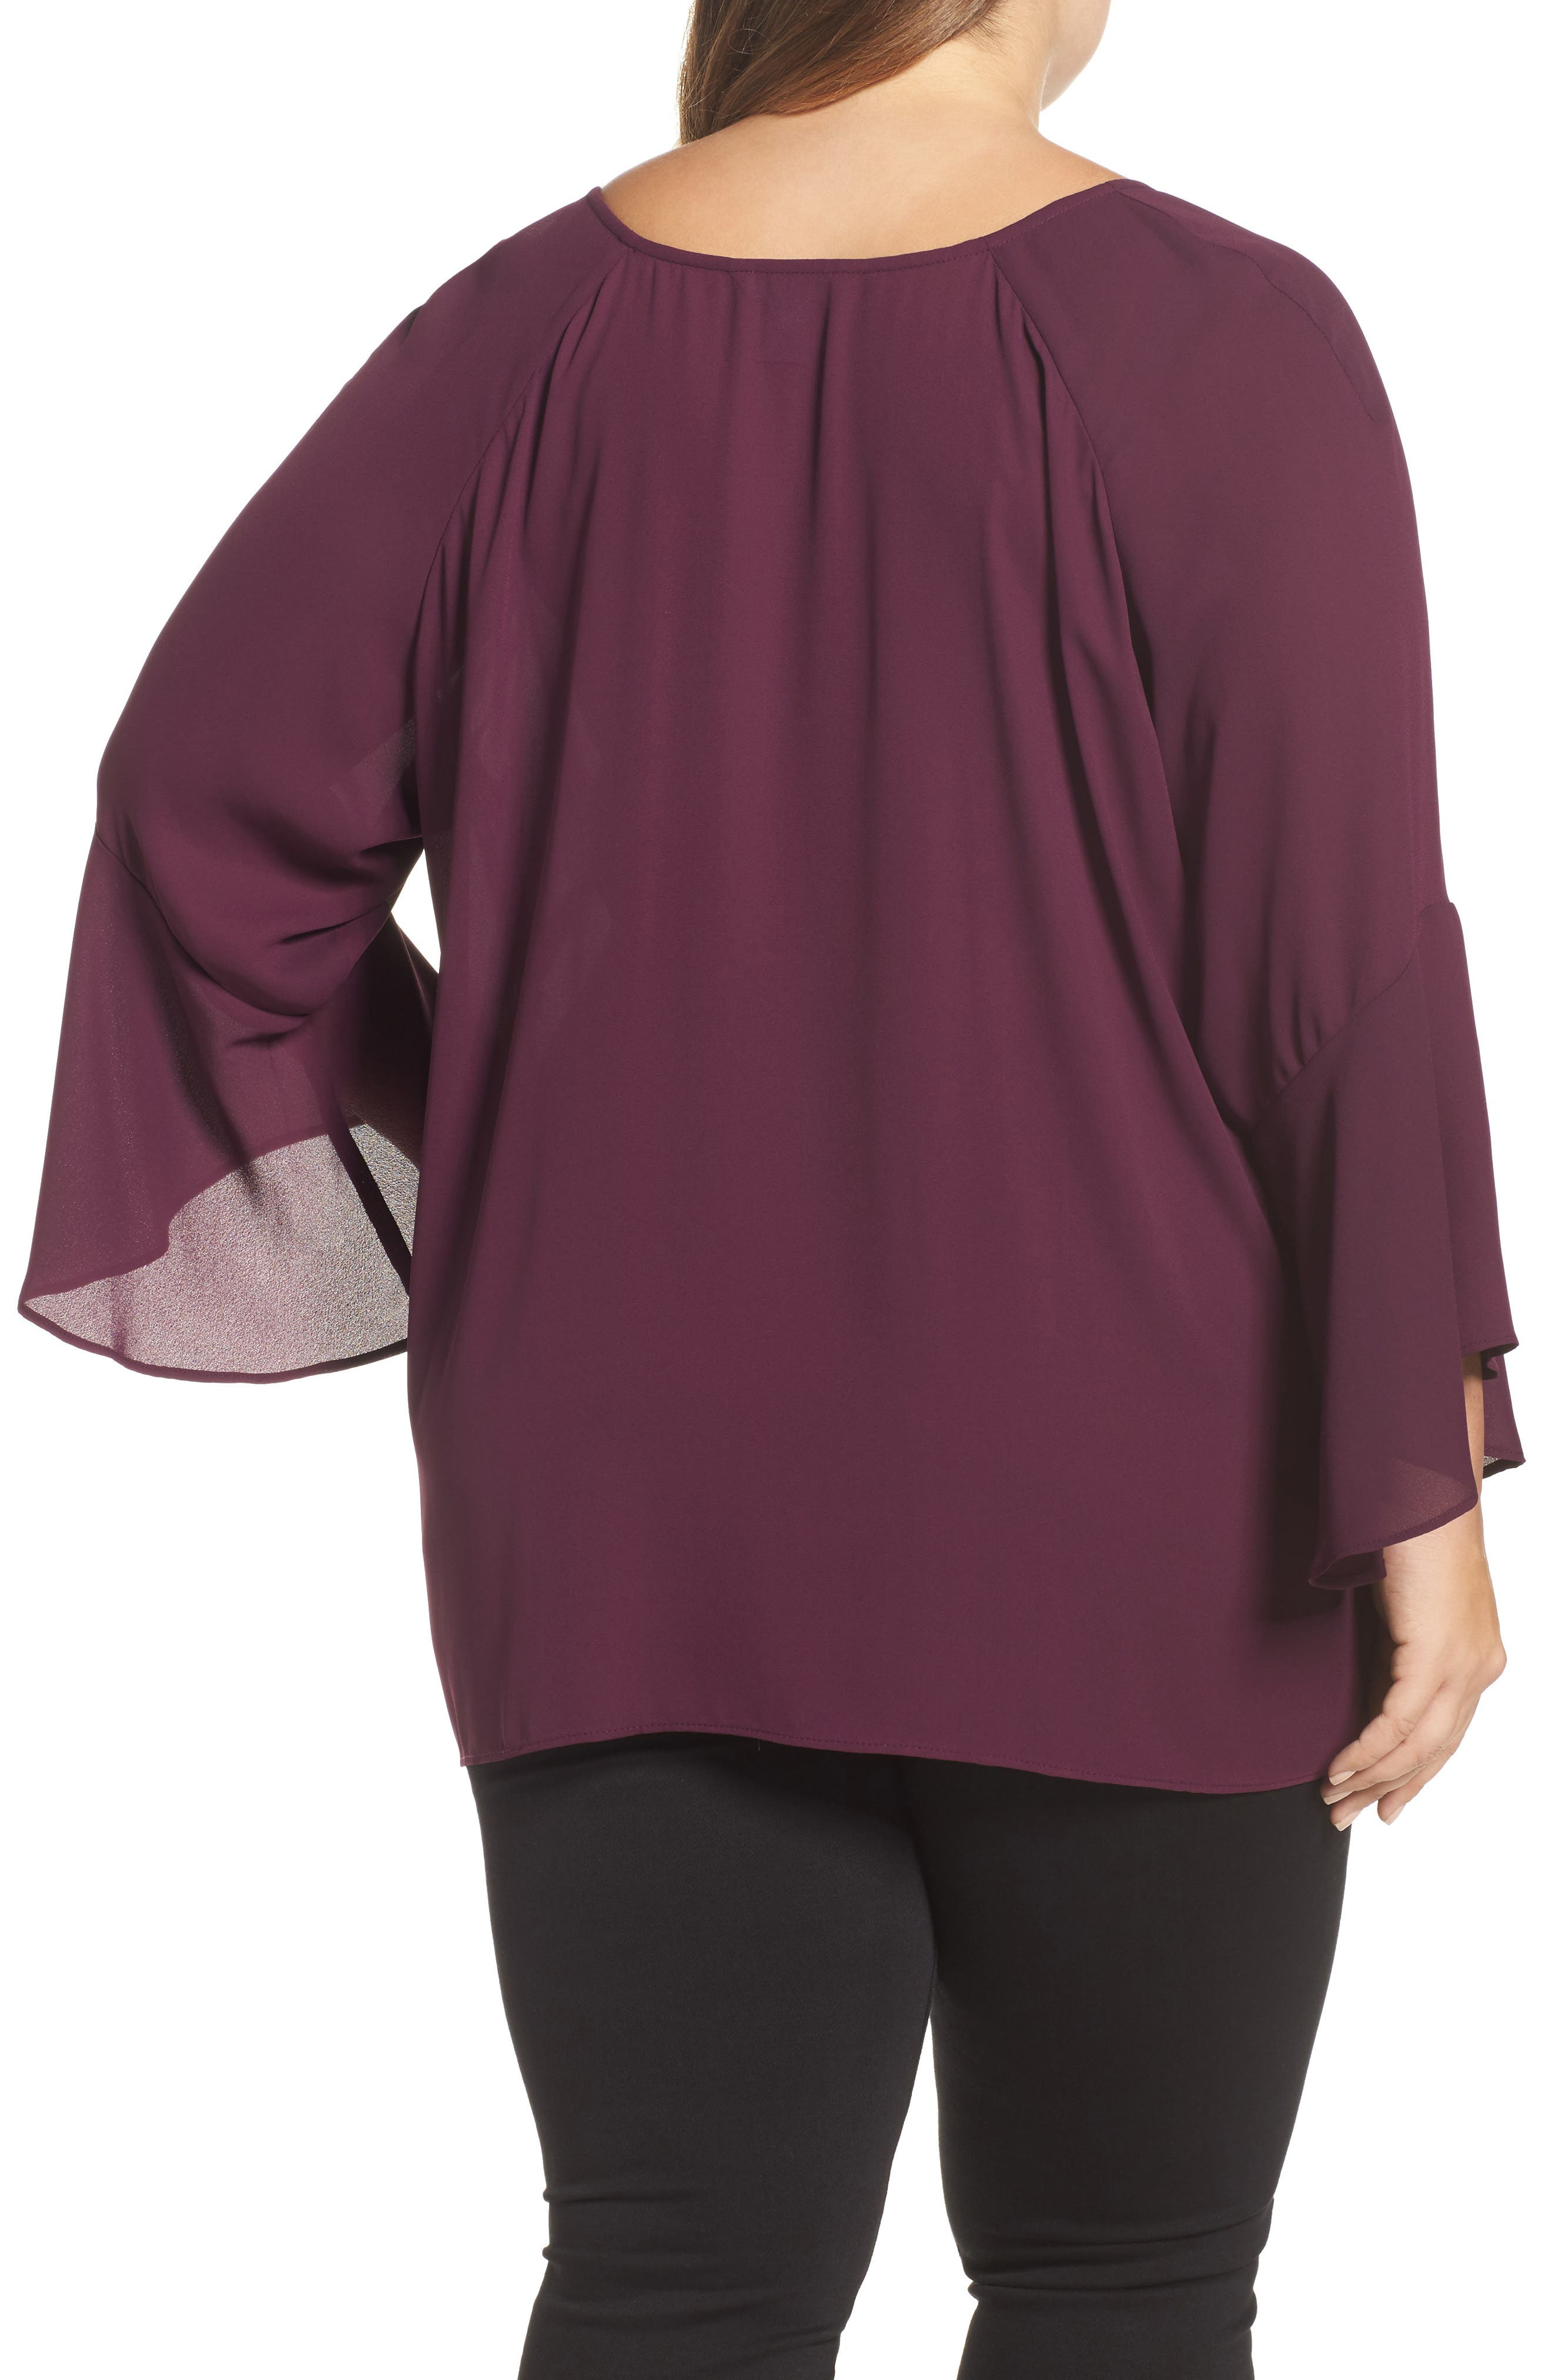 Bell Sleeve Blouse,                             Alternate thumbnail 2, color,                             Eggplant